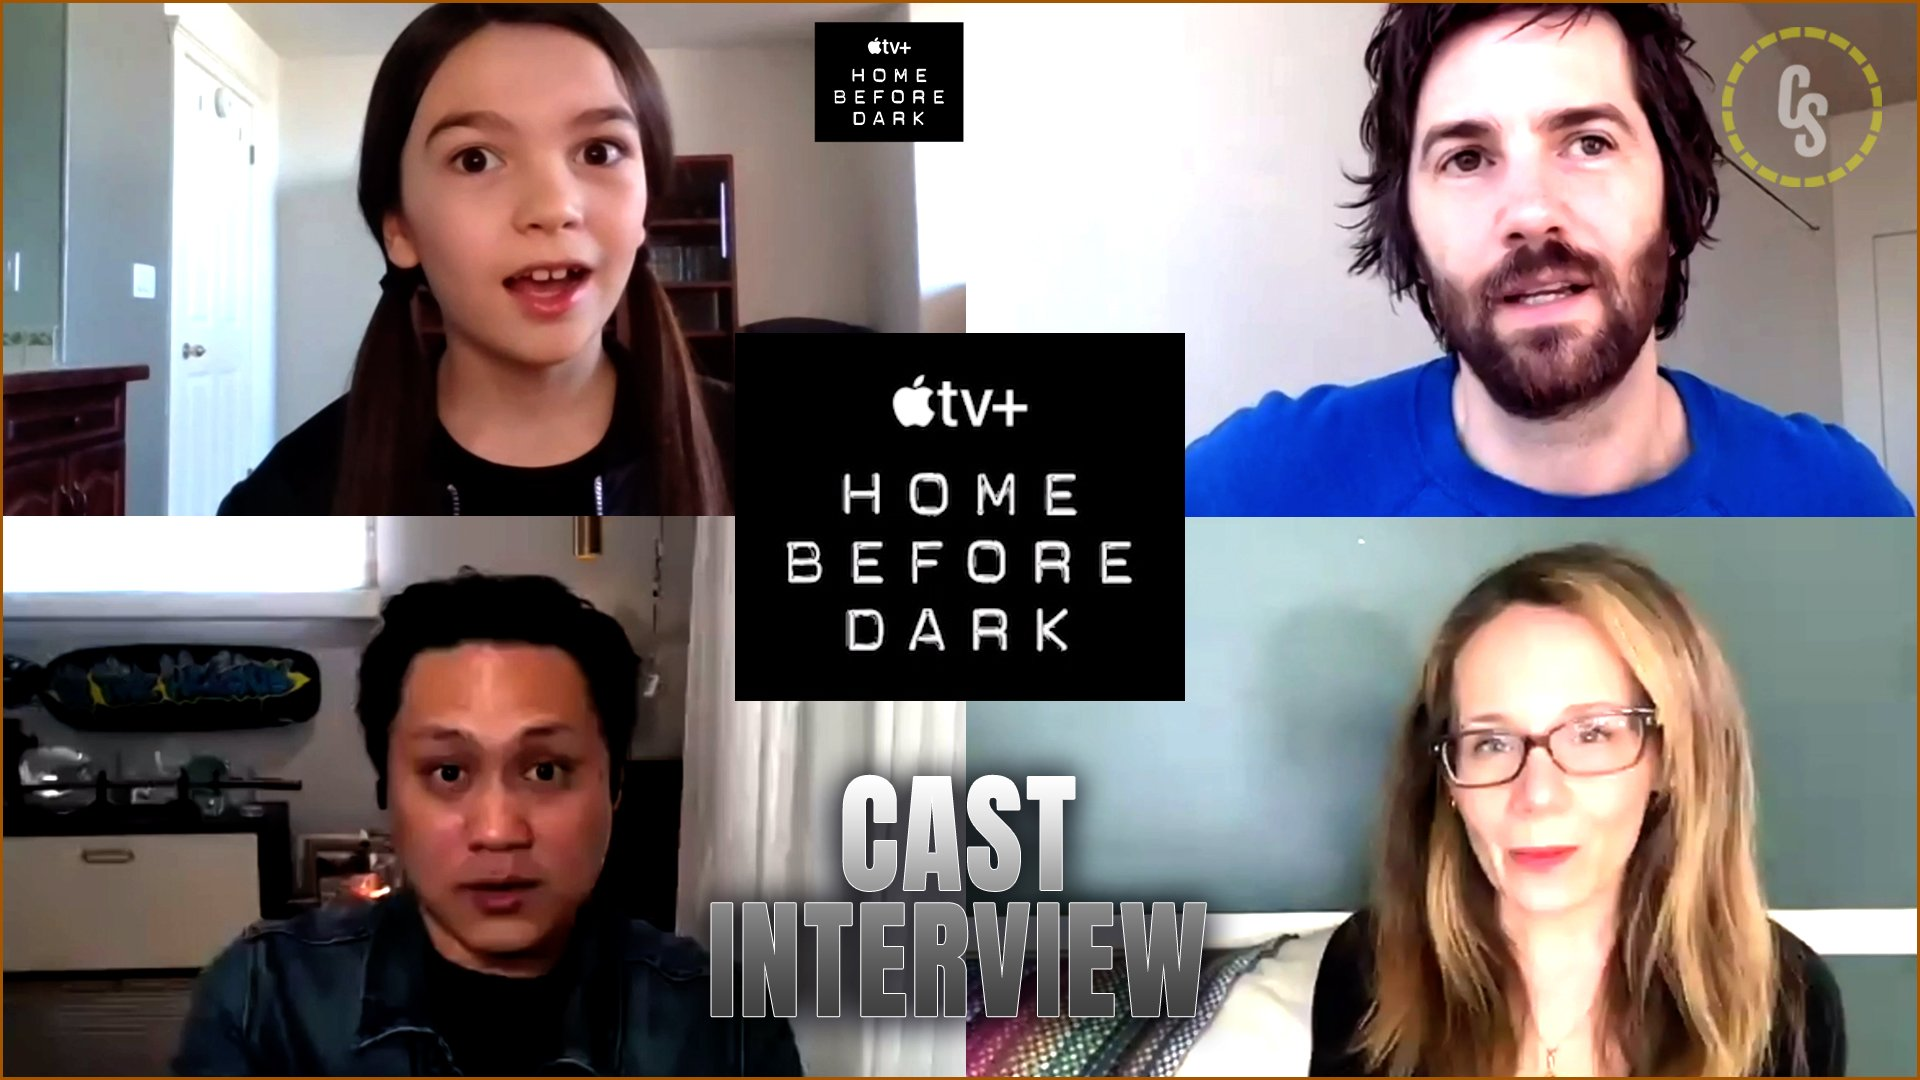 CS Video: Home Before Dark Interviews With Jim Sturgess & More!